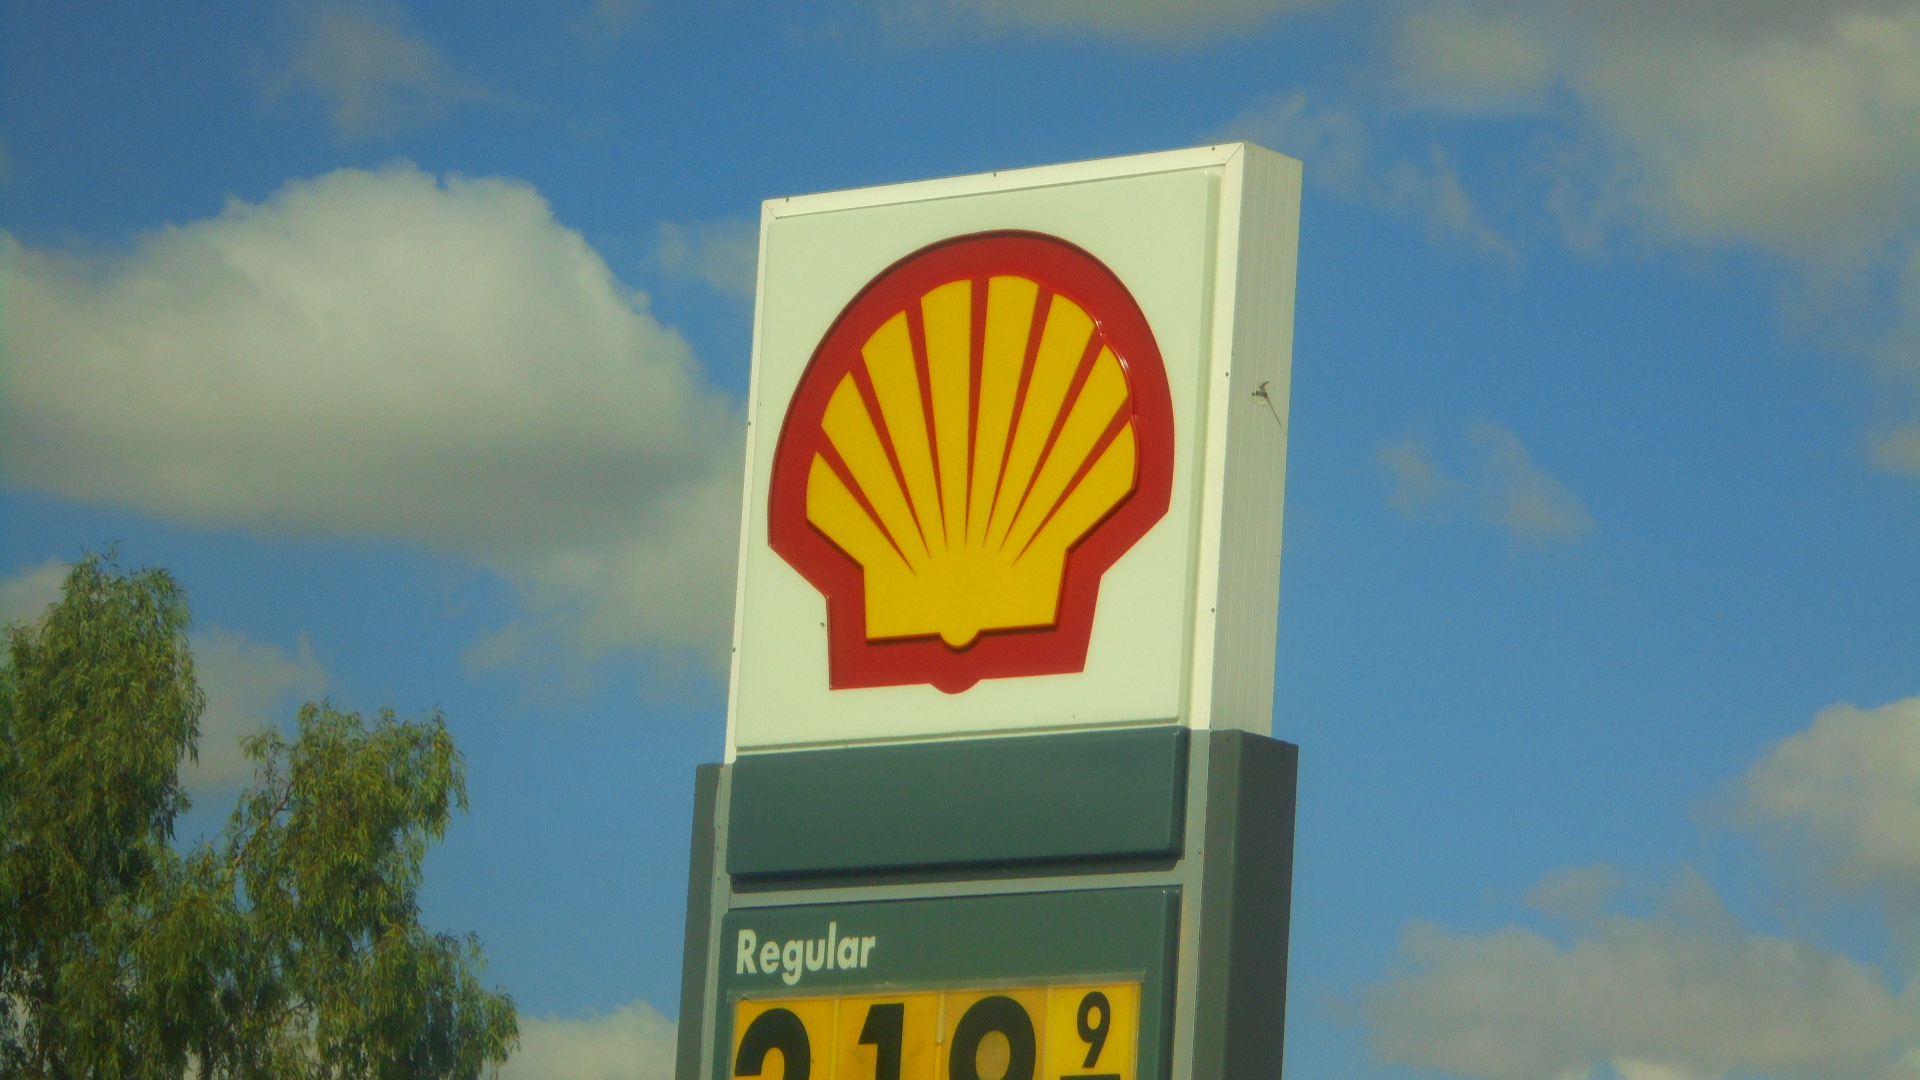 File:Shell gas sign.JPG - Wikimedia Commons